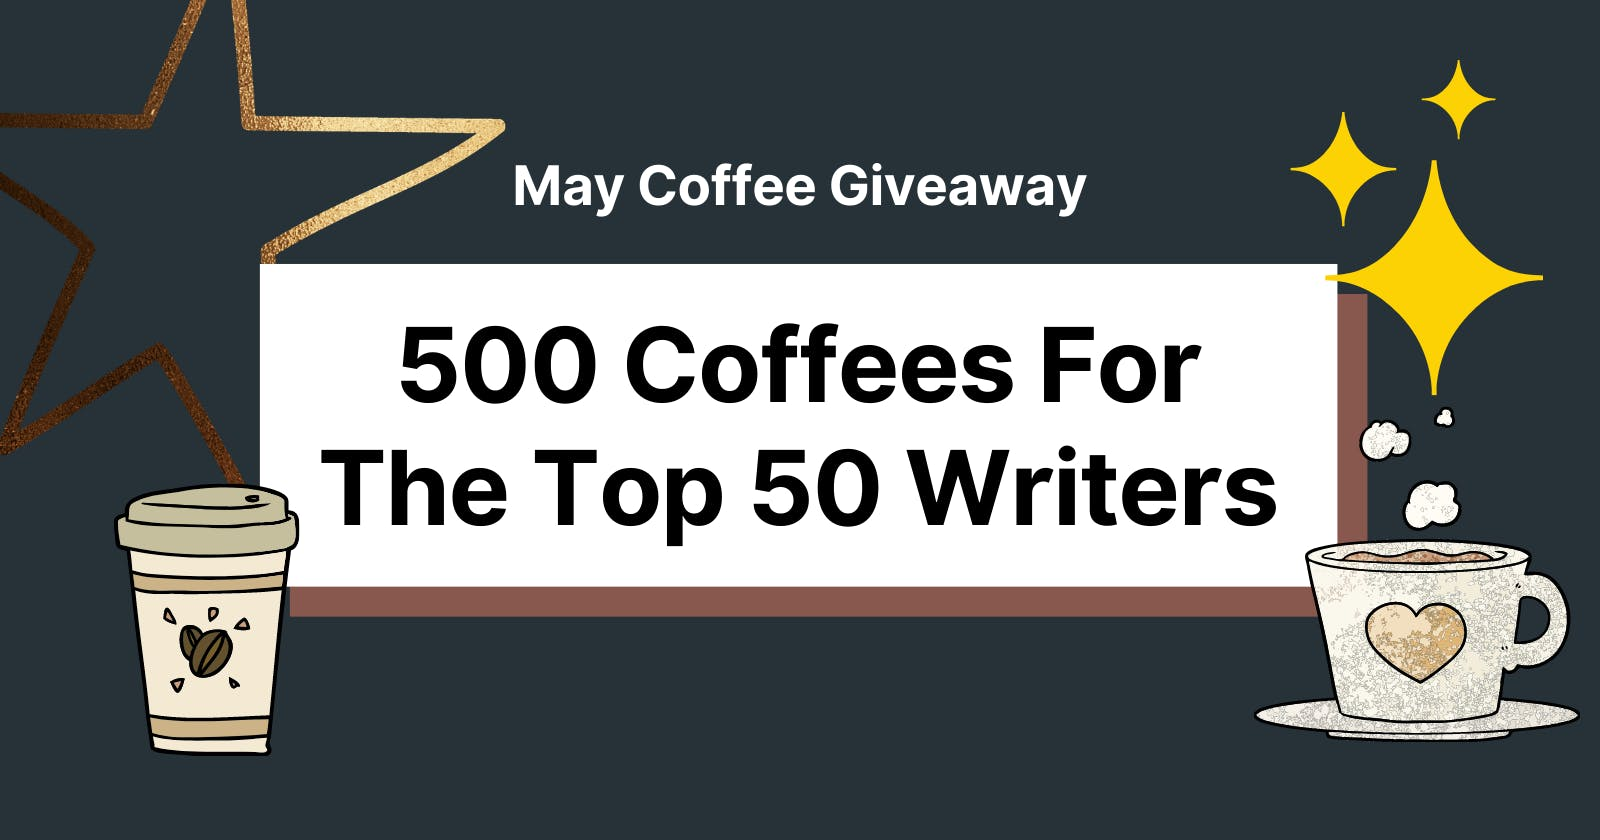 May Giveaway 💸 ☕️ - 500 Coffees For The Top 50 Writers on Hashnode!